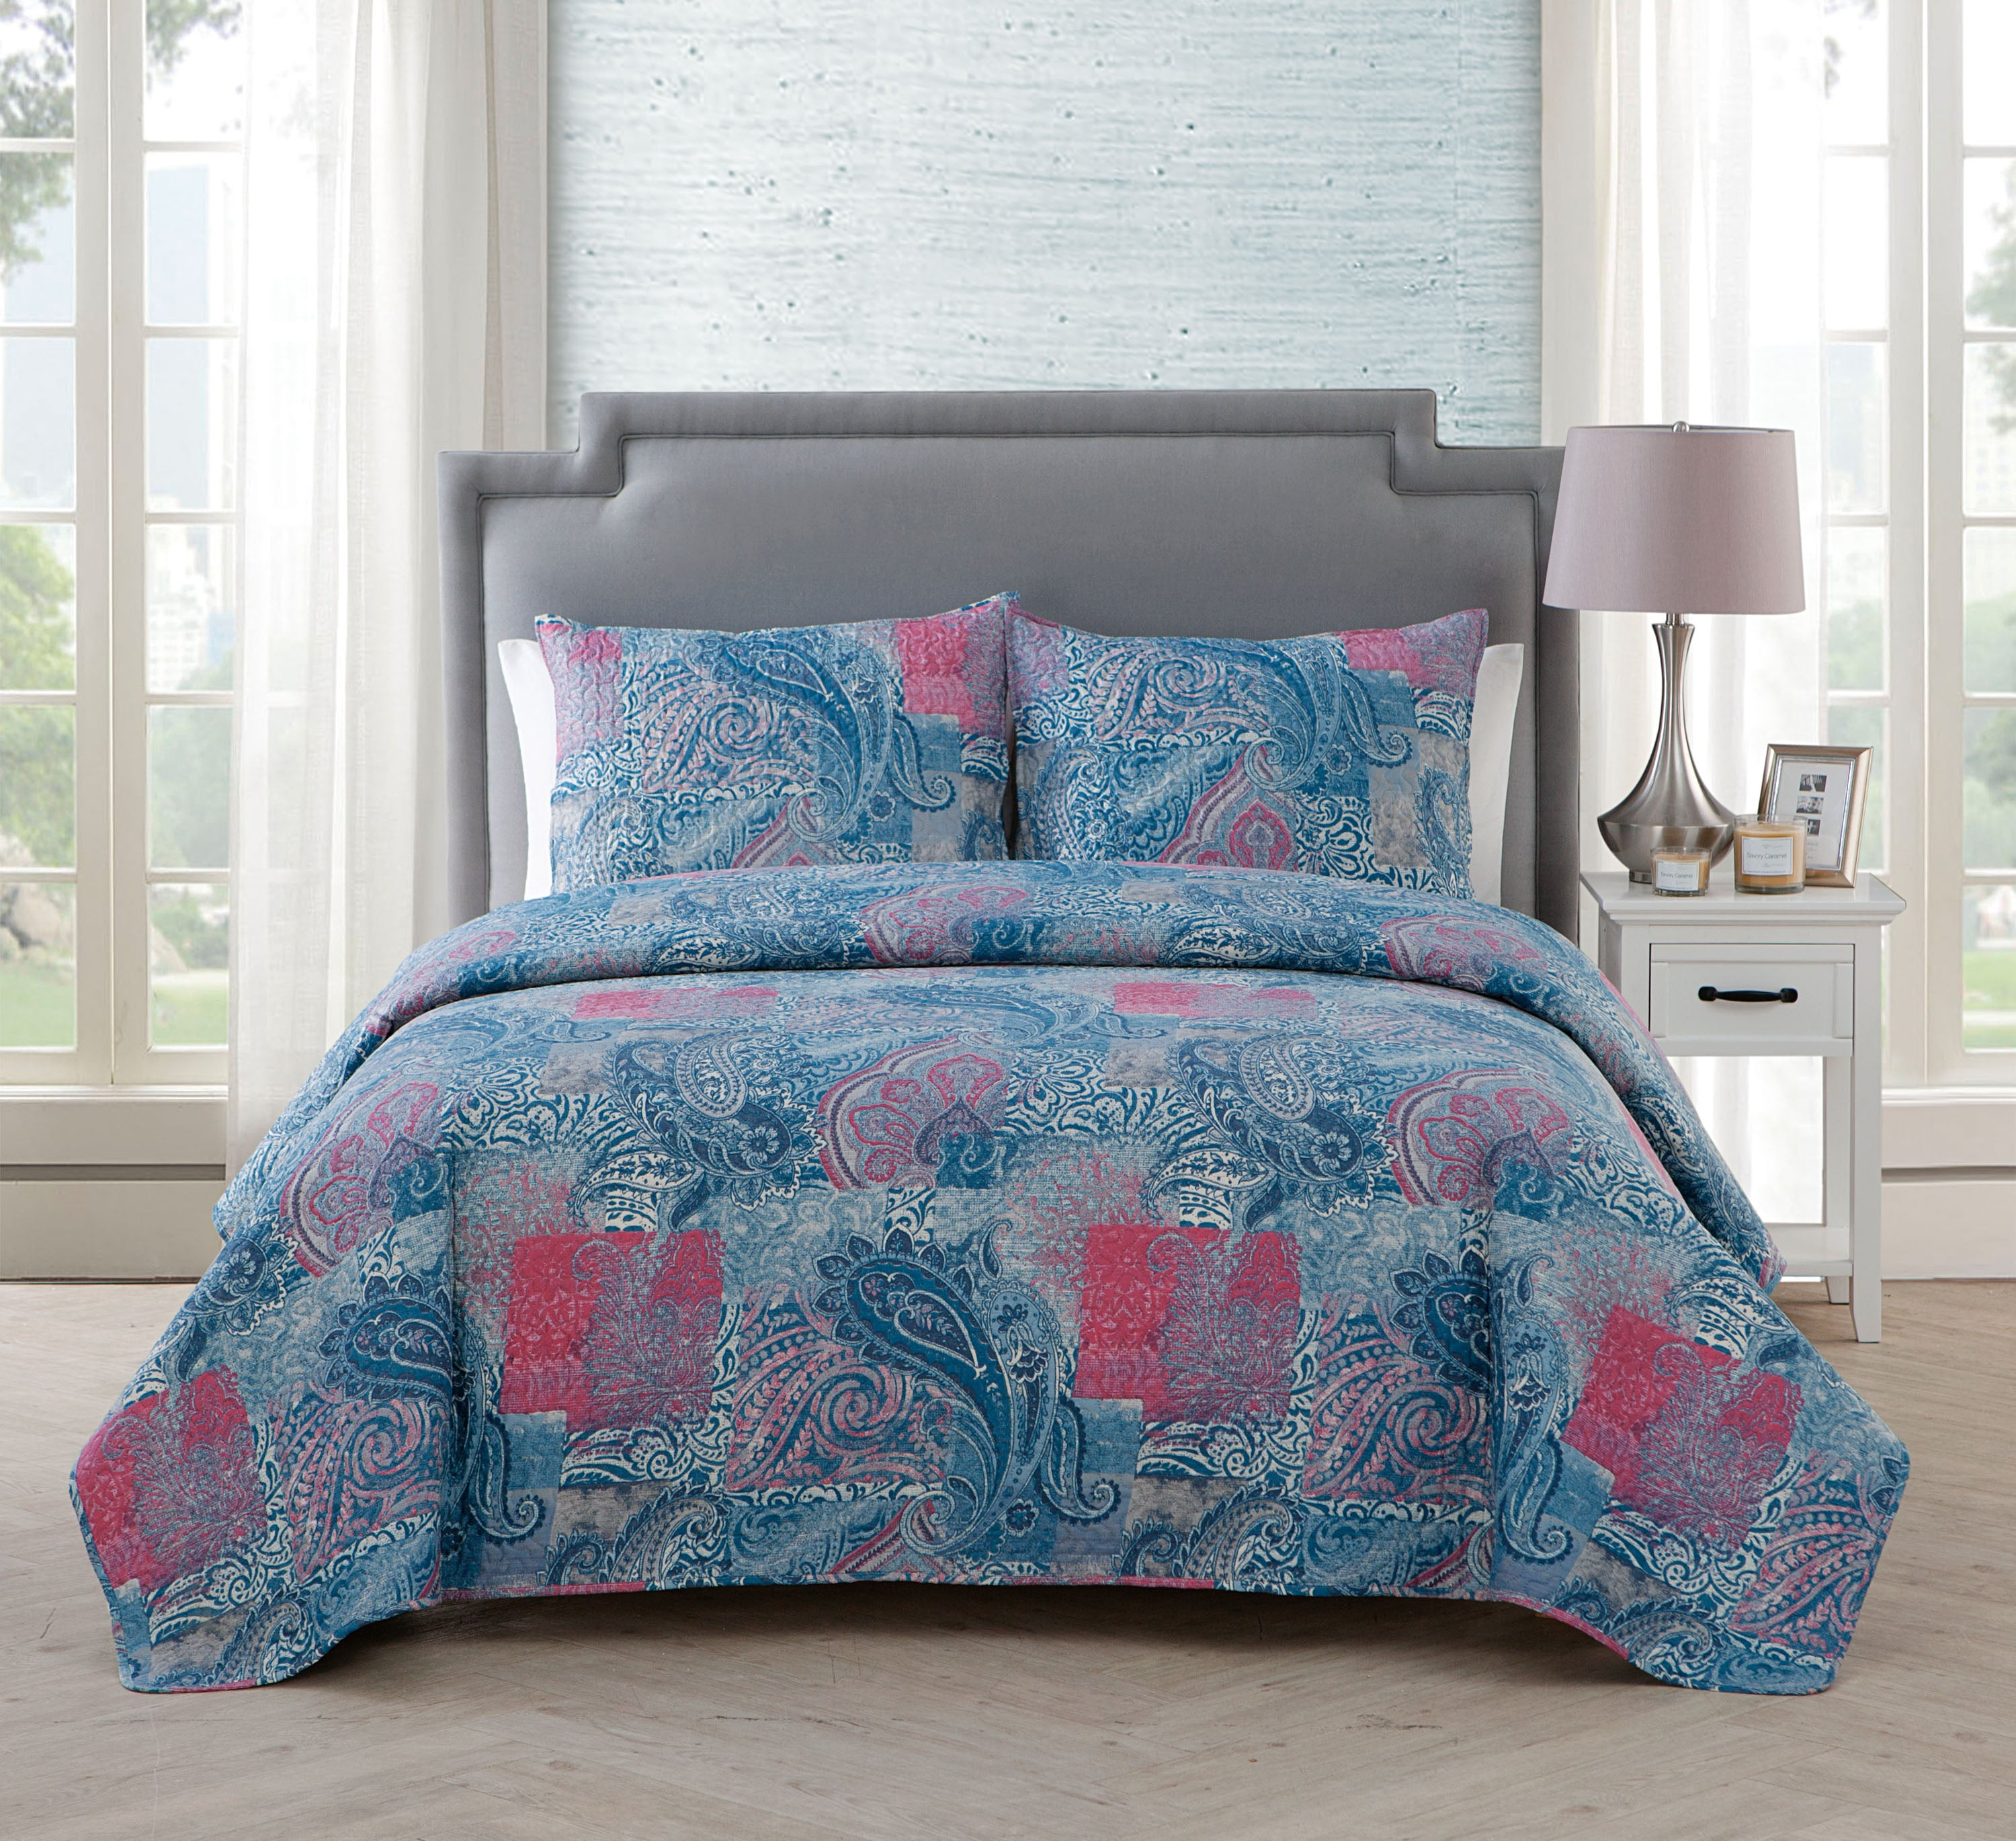 queen white blue teal covers pink pattern turquoise size bedding overstock black of set online full comforter paisley polka and duvet red cover dot